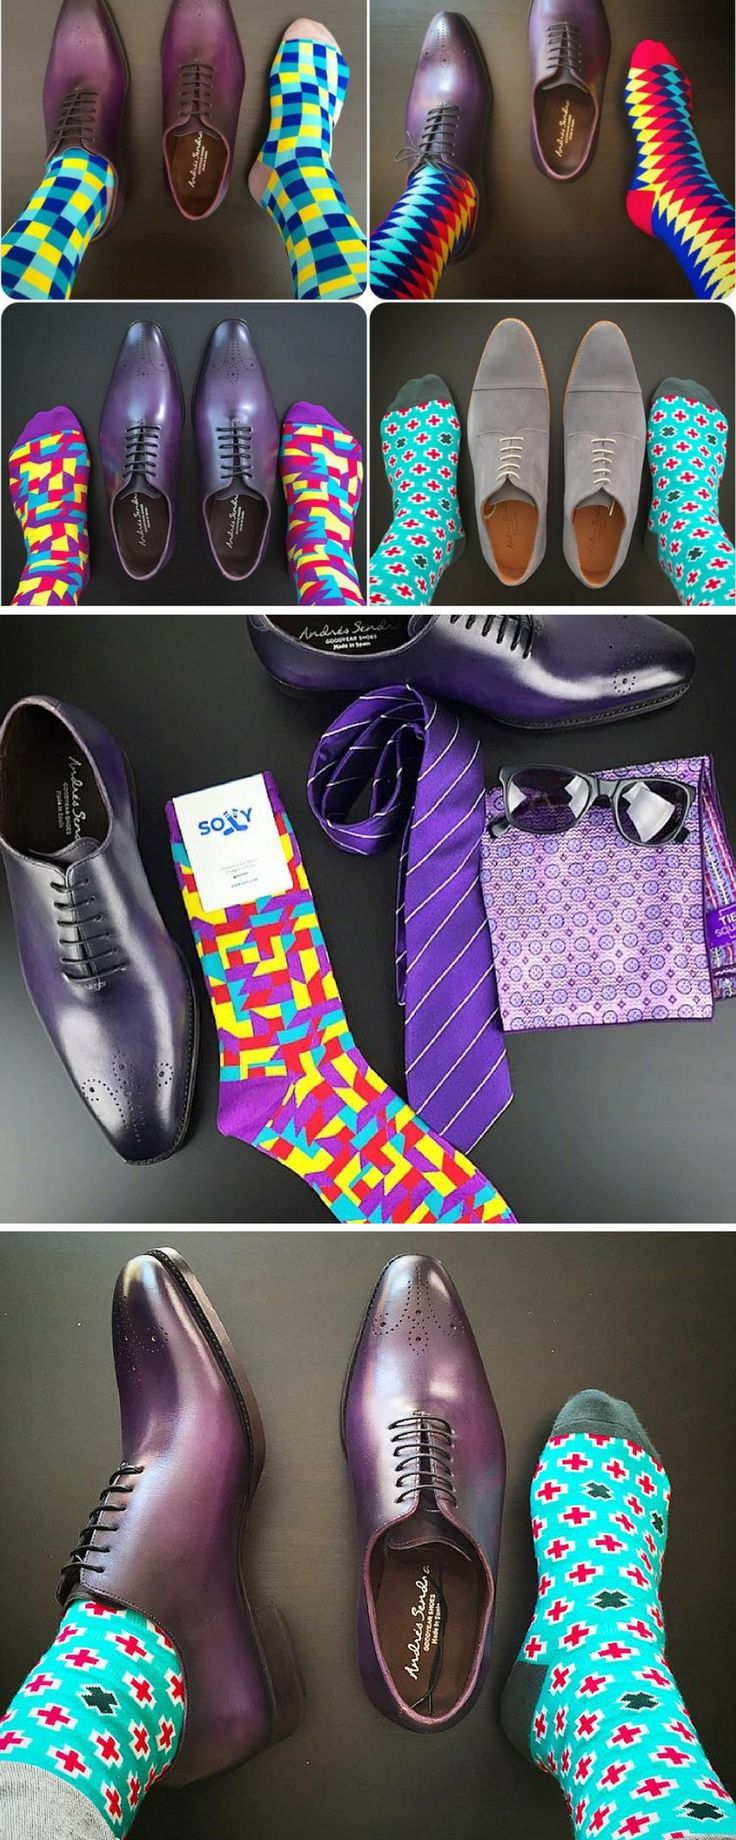 Soxy.com designs the coolest, most fun dress socks.